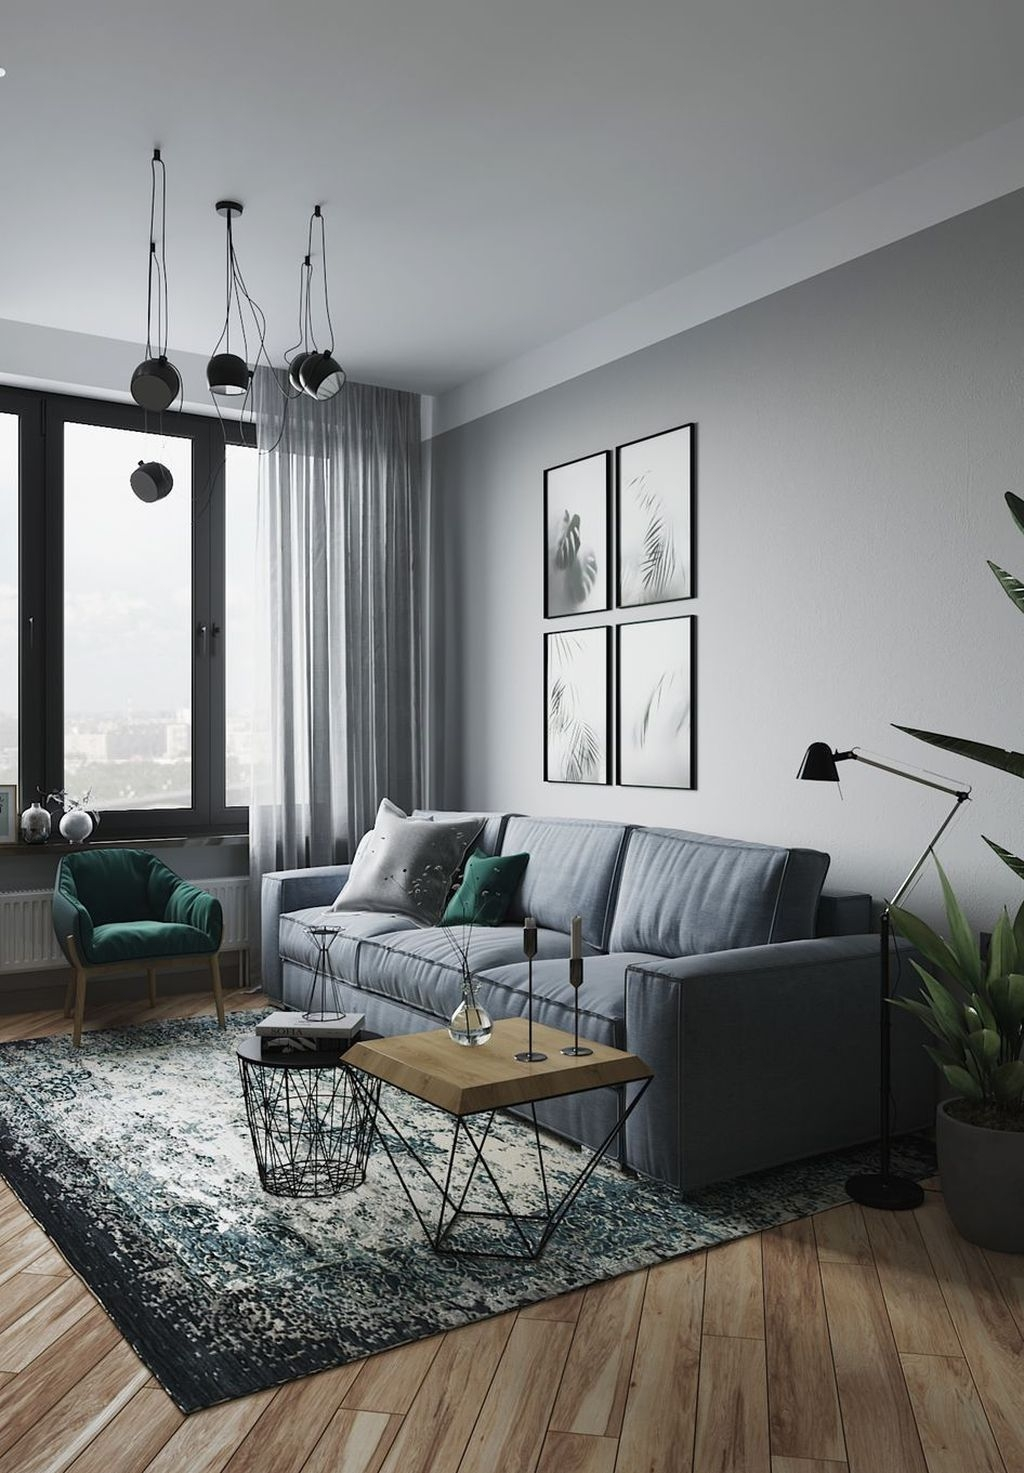 Unique Apartment Décor Ideas You Will Want To Keep45